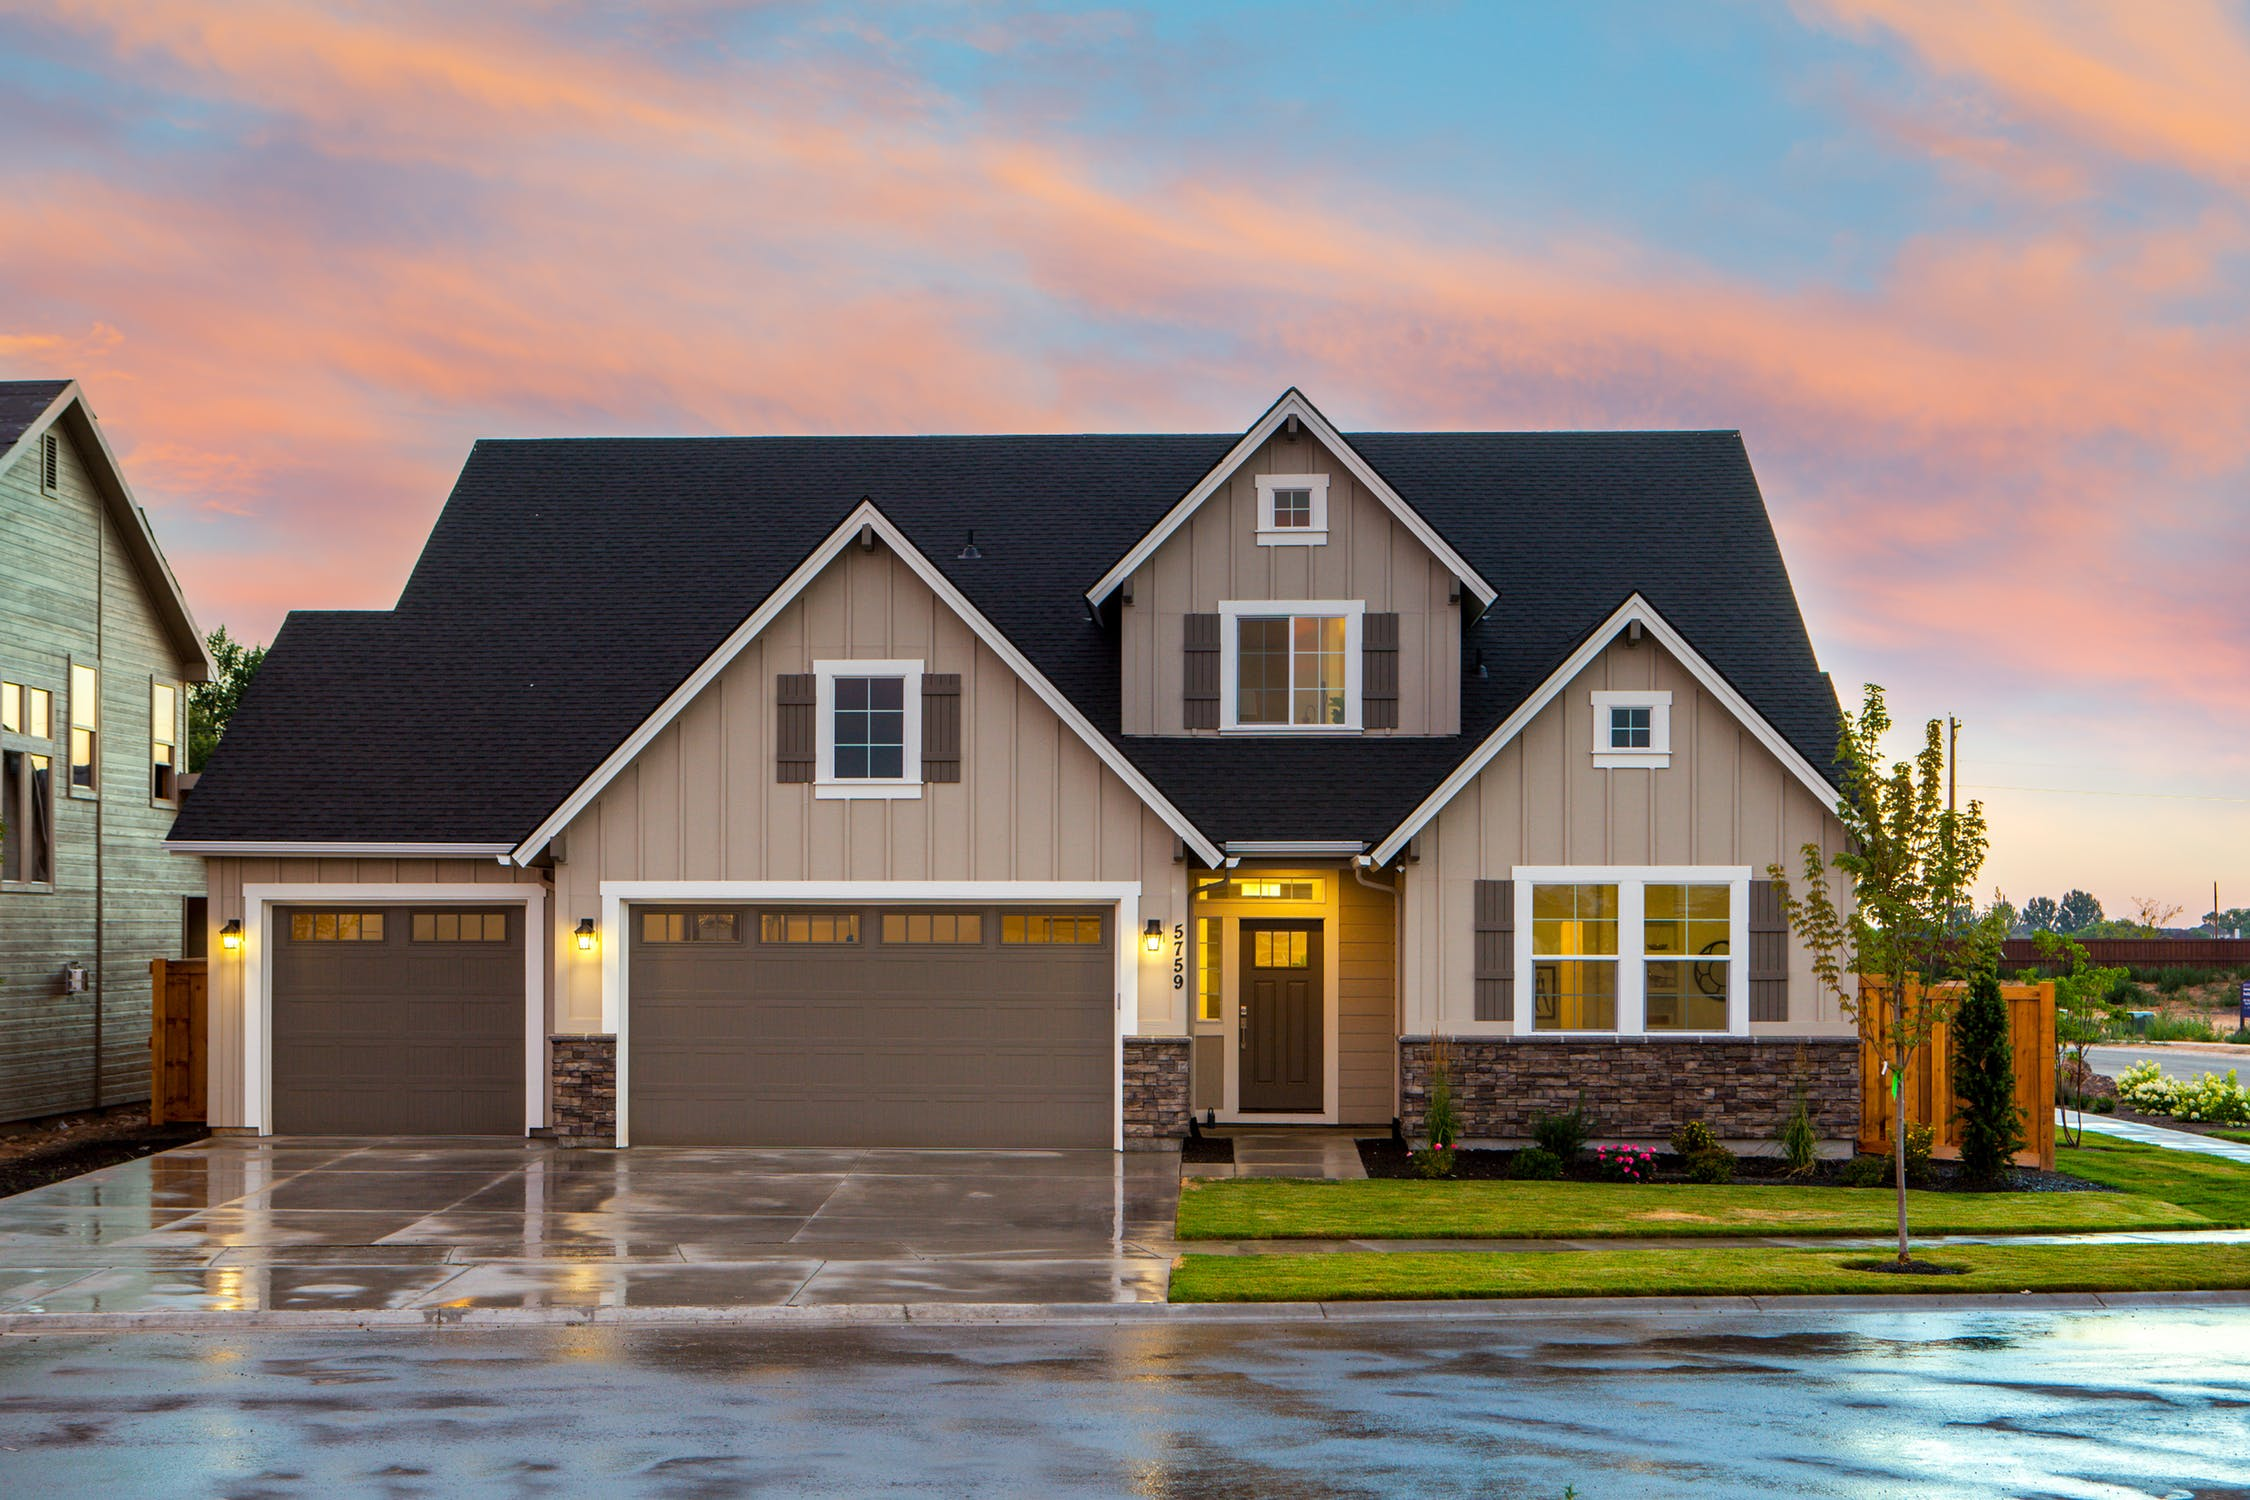 Home Building Budget - Take These Five Steps to understand Just How Much House You Are Able To Build